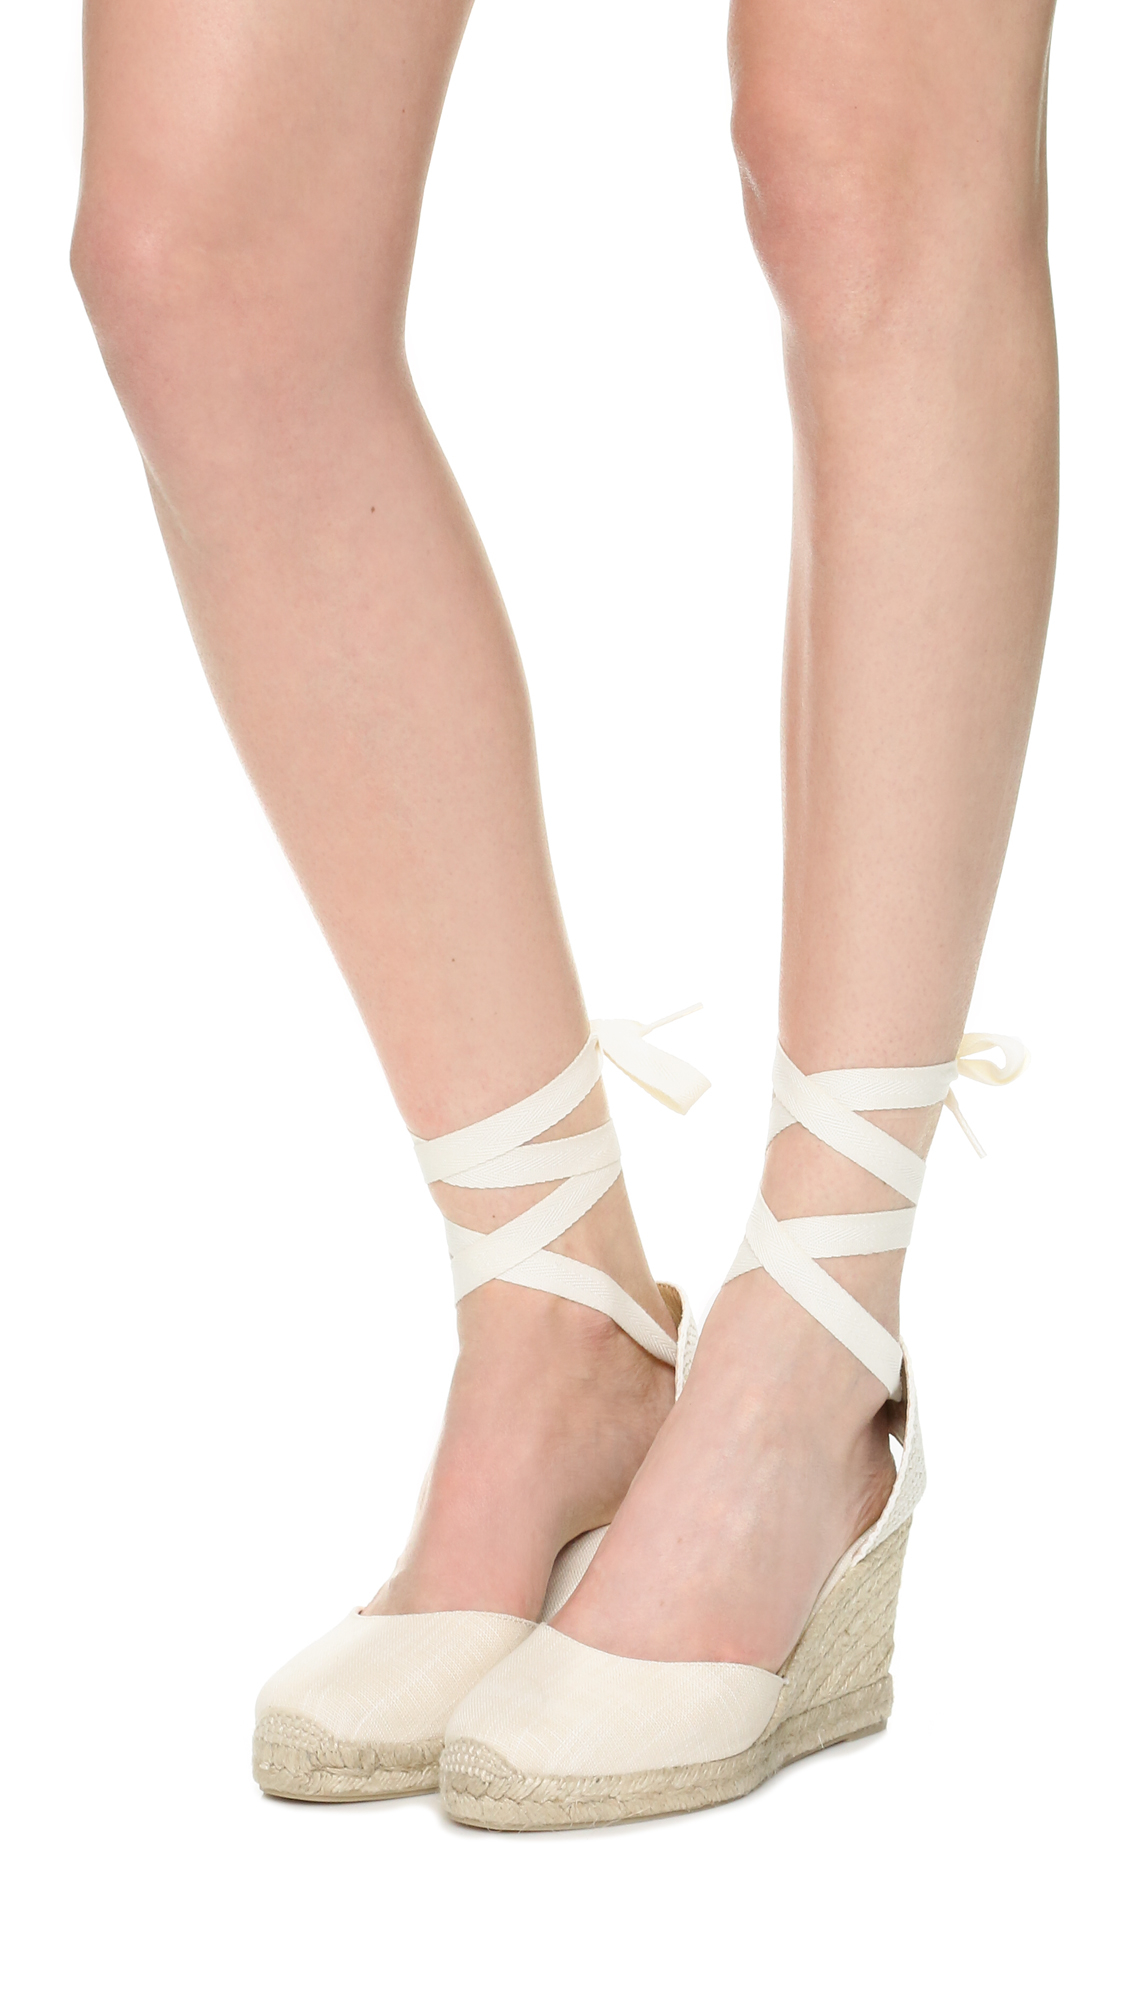 b58ef14343e Lyst - Soludos Tall Wedge Espadrilles in Natural